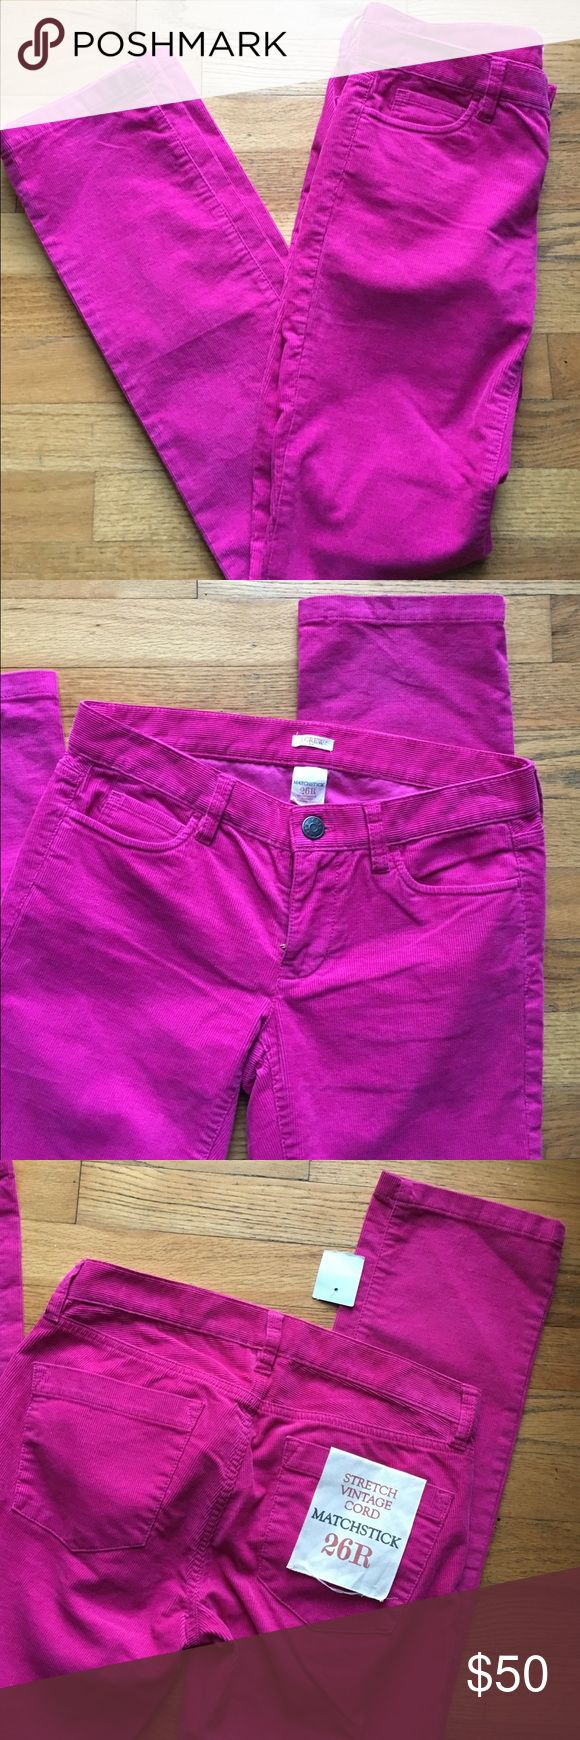 J.Crew stretch vintage raspberry cord pants Love the deep pink color and matchstick cut! NWT. 99% cotton, 1% spandex. 33 inch inseam. J. Crew Pants Skinny